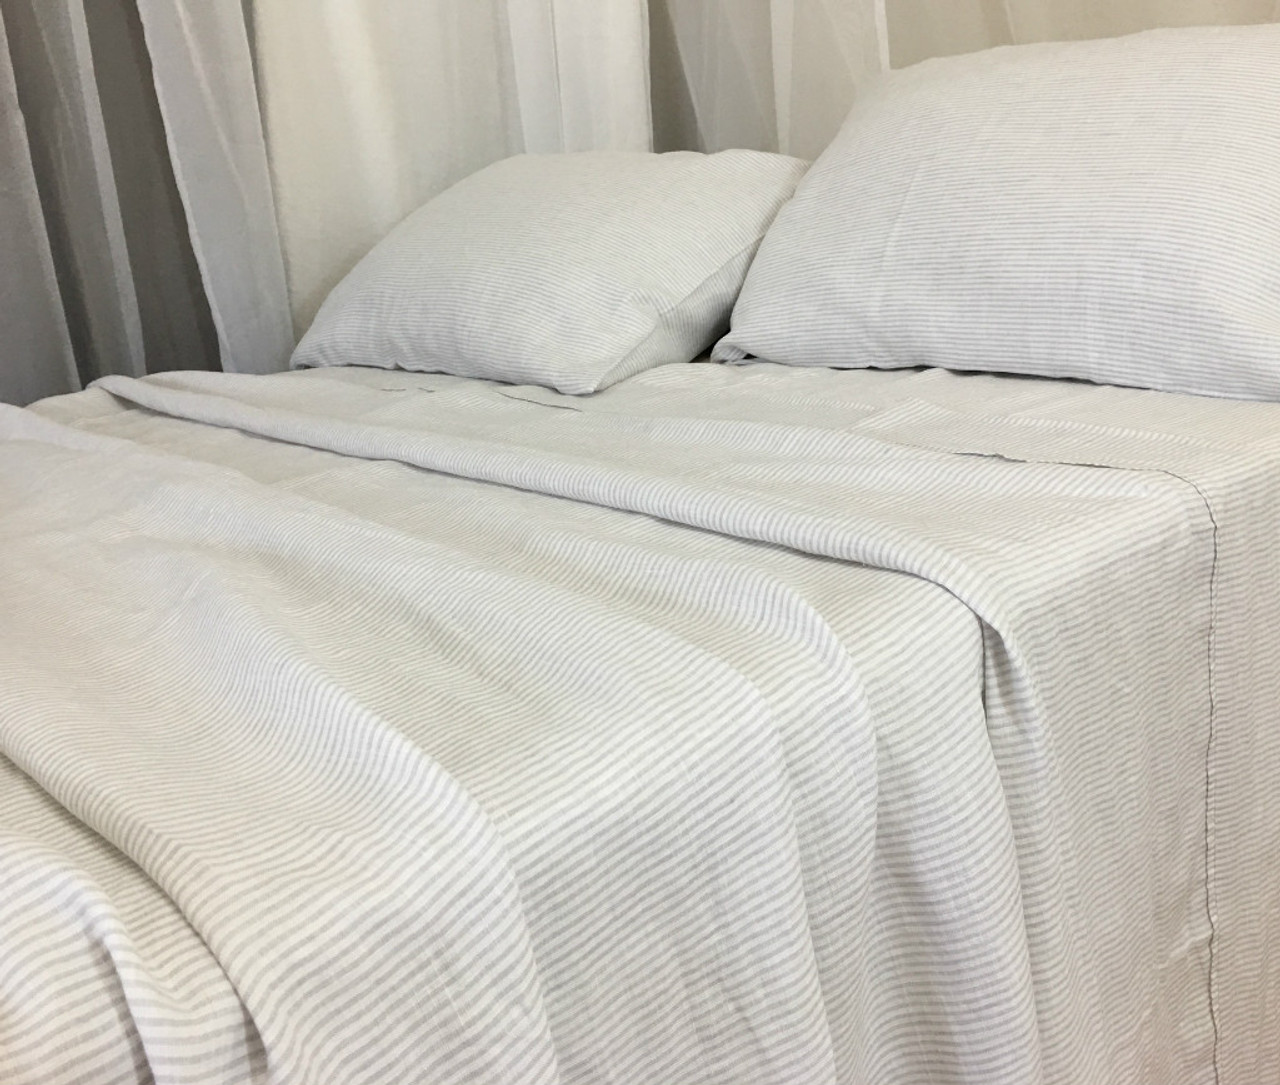 Stone Grey And White Striped Bed Sheets Handcrafted By Superior